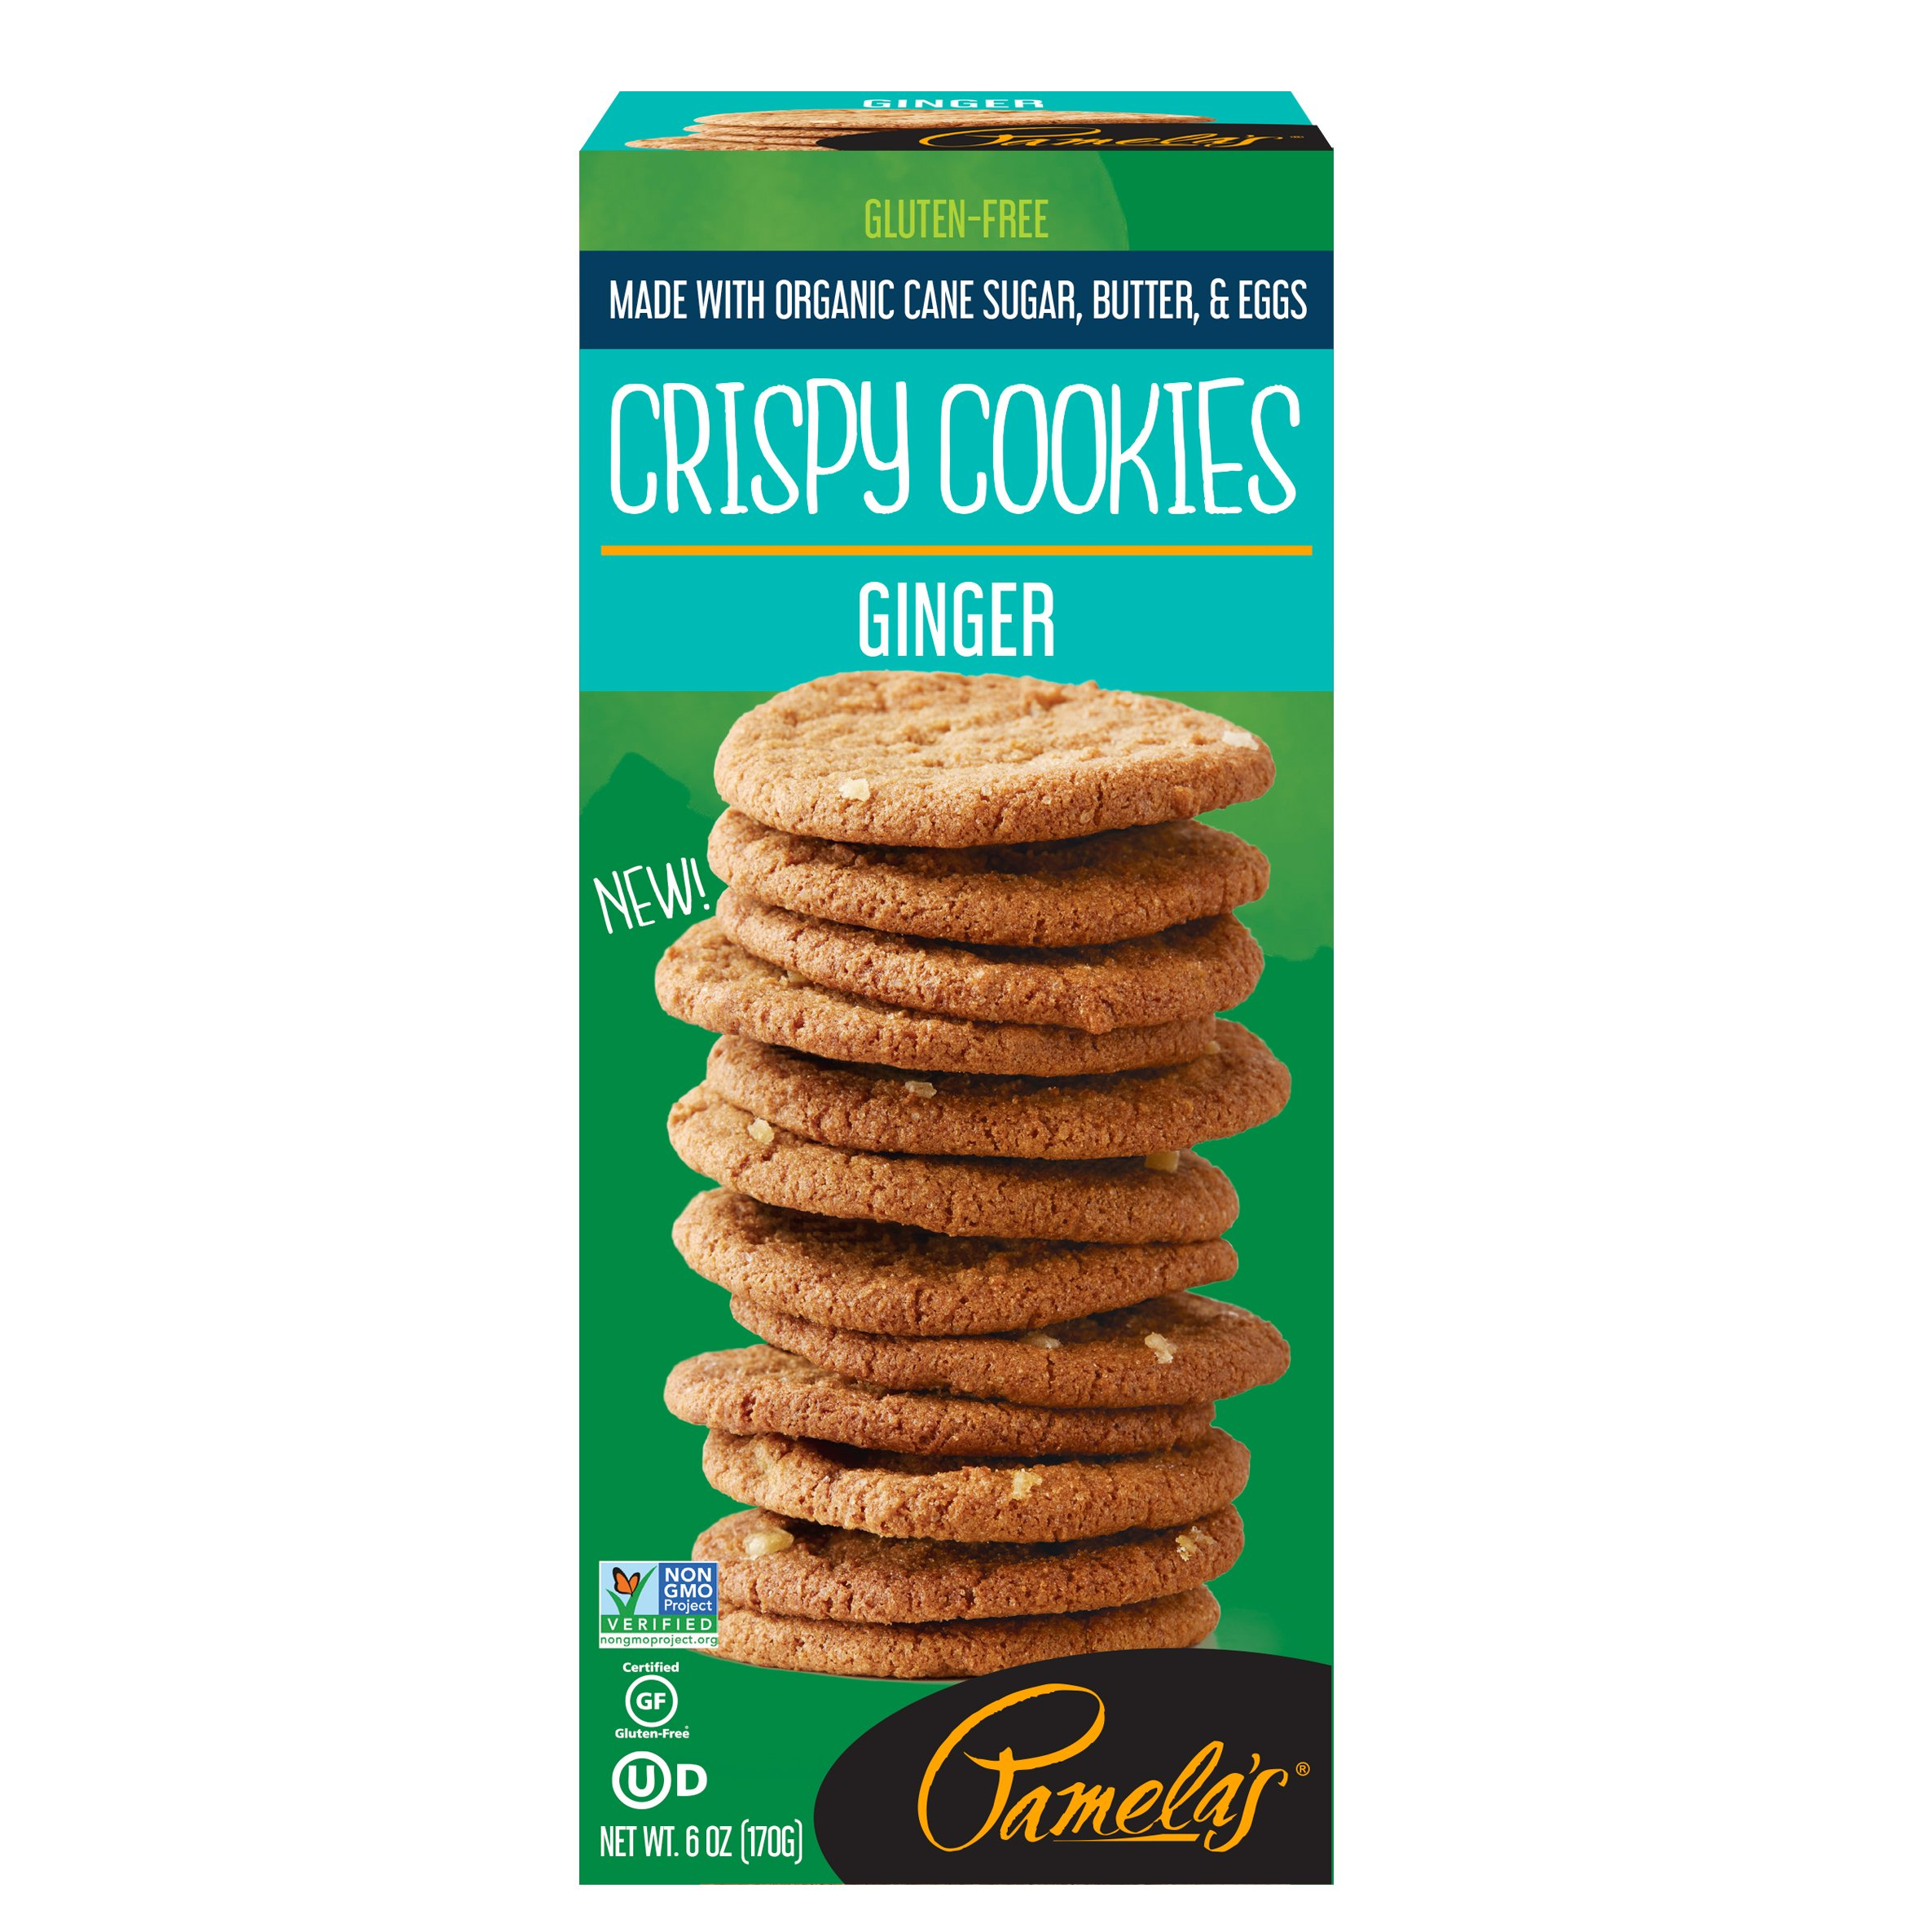 Pamela's Products Crispy Gluten Free Cookies, Ginger, 6 Ounce Box, 6 Count by Pamela's Products